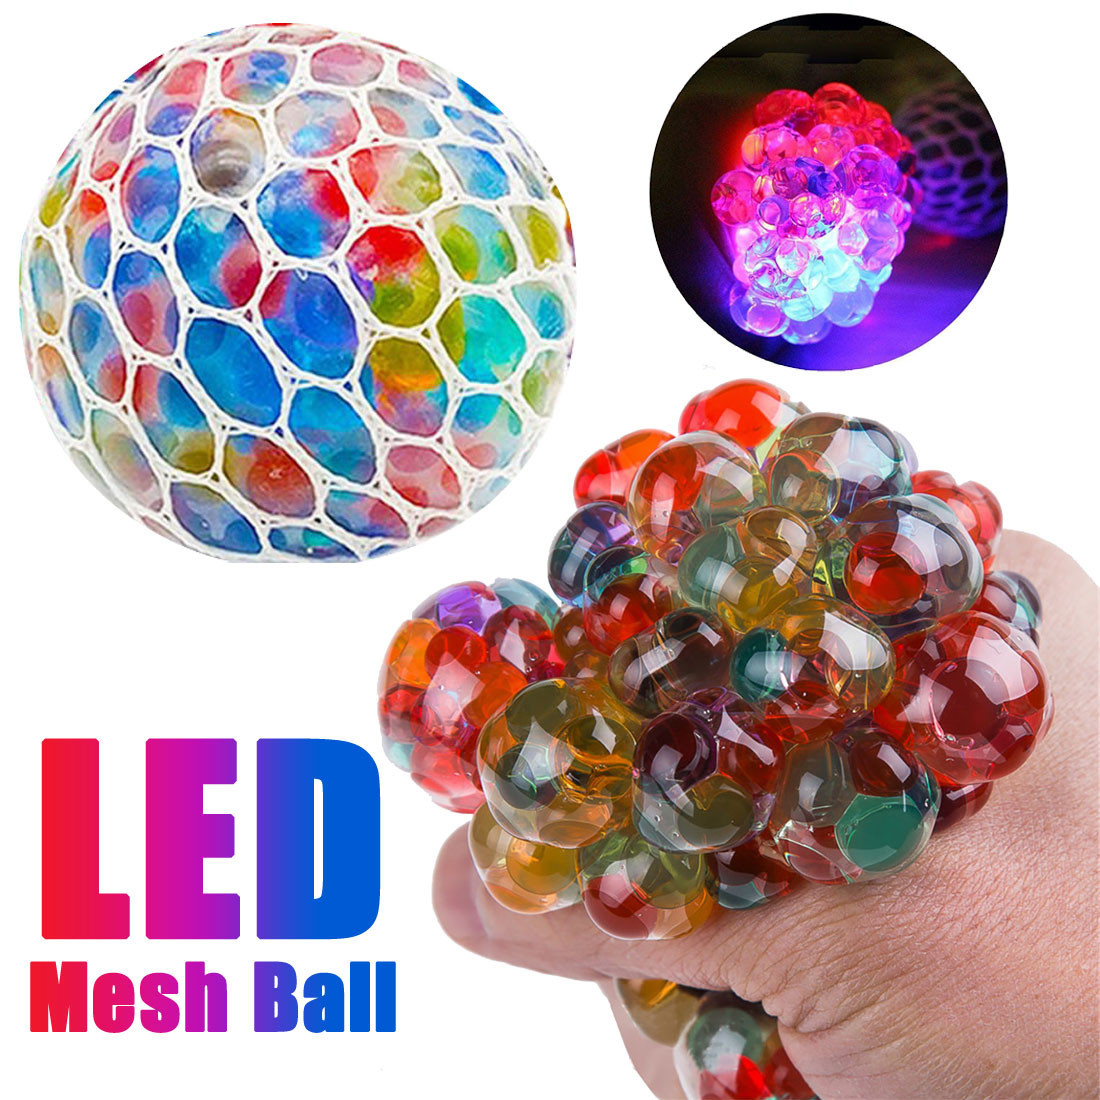 2018 New Arrive  Mesh Ball Stress LED Glowing Reduce Grape Toys Anxiety Relief  Stress Ball Kids Toy(China)